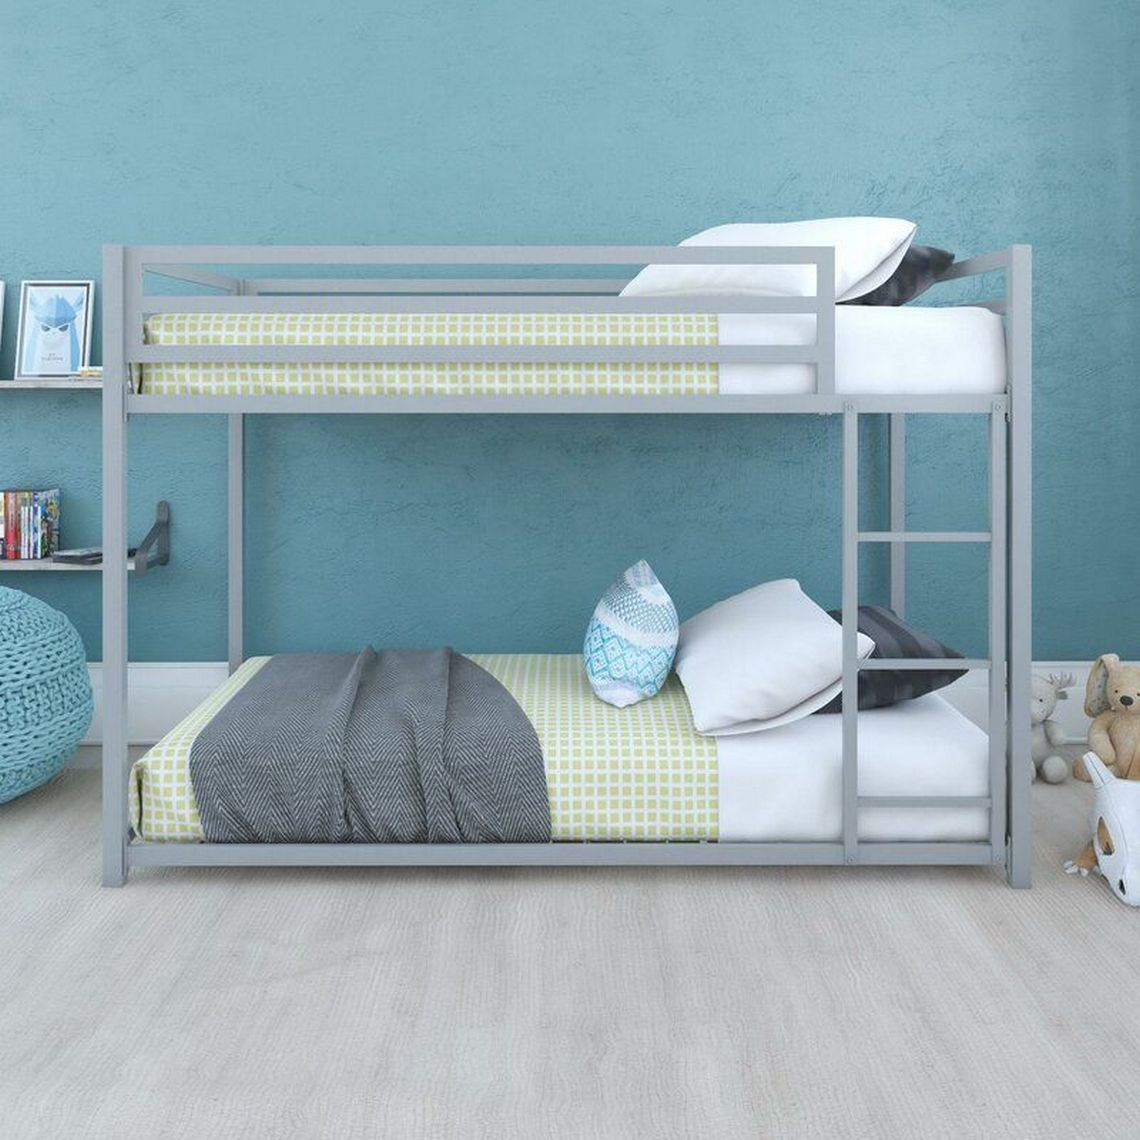 48 Popular Models Of Adult Bunk Bed Designs 21